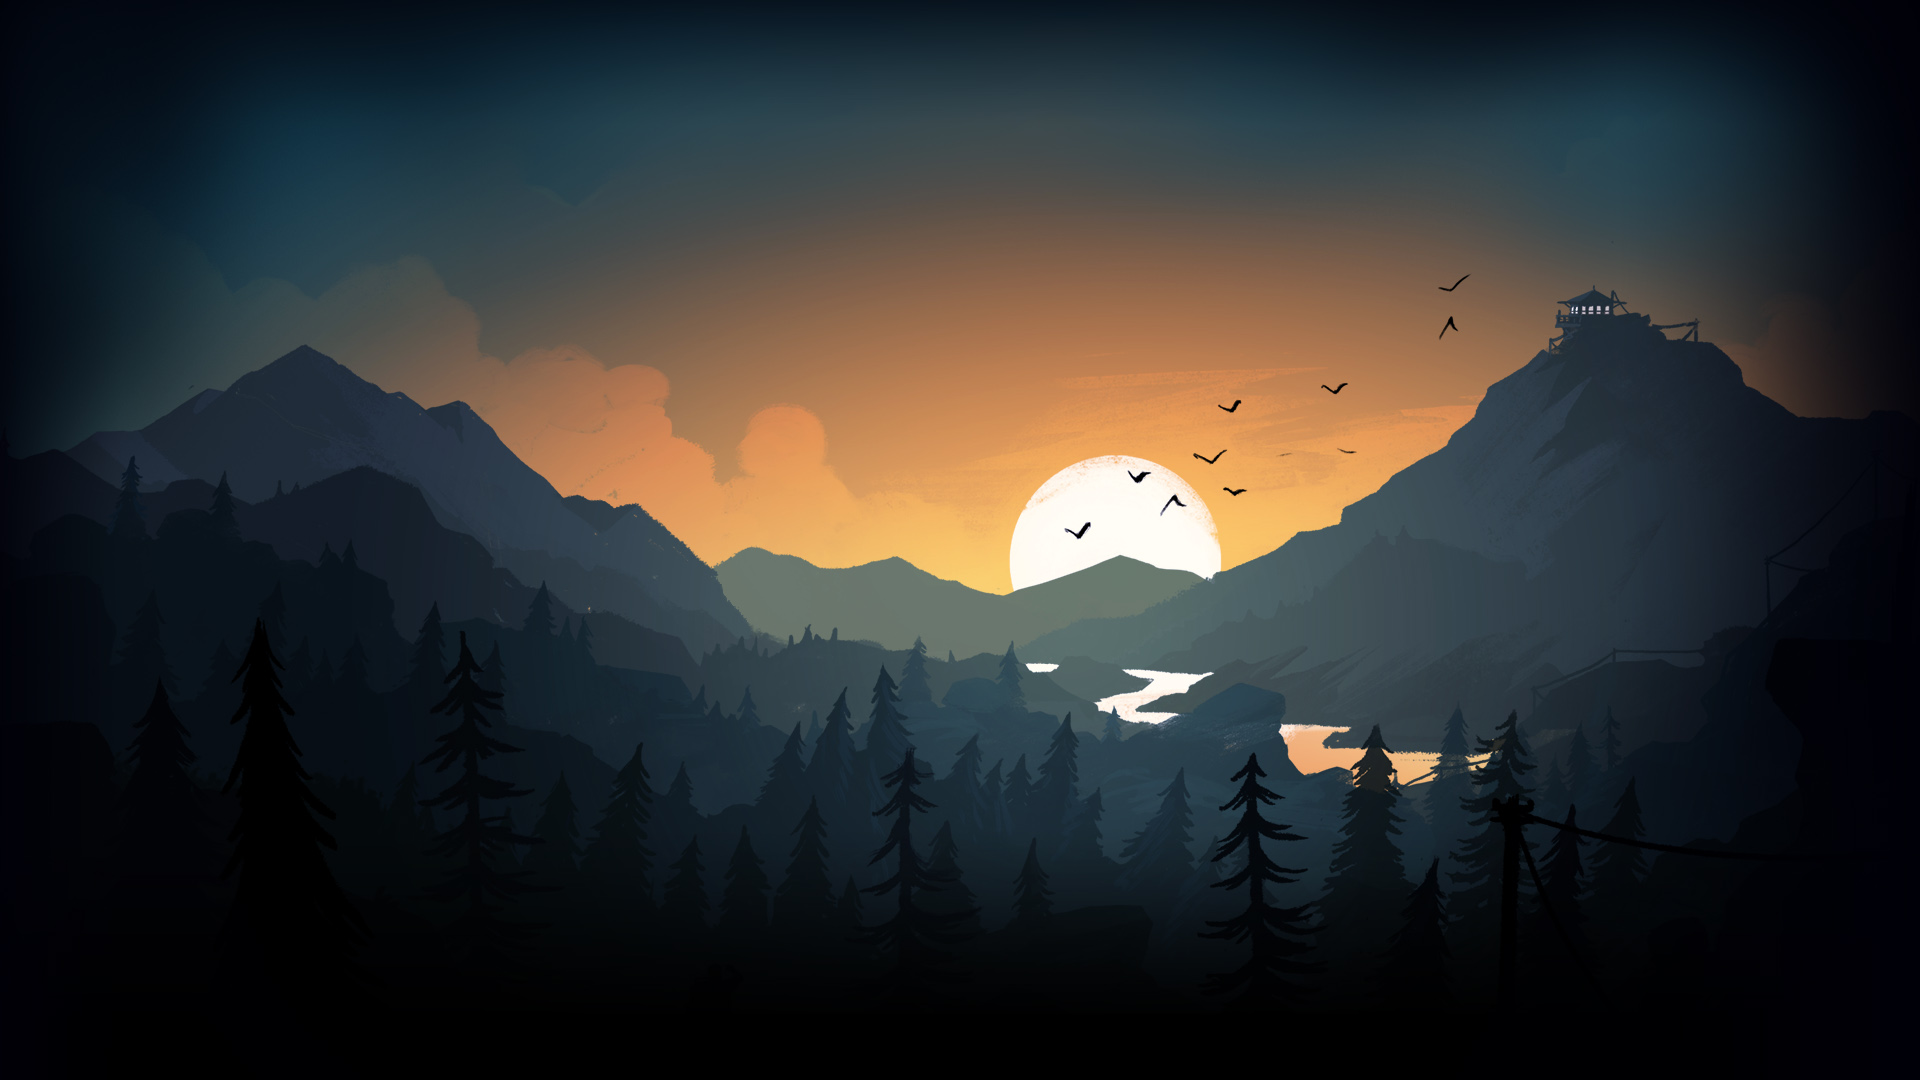 firewatch sun trees mountains birds lake evening, hd artist, 4k